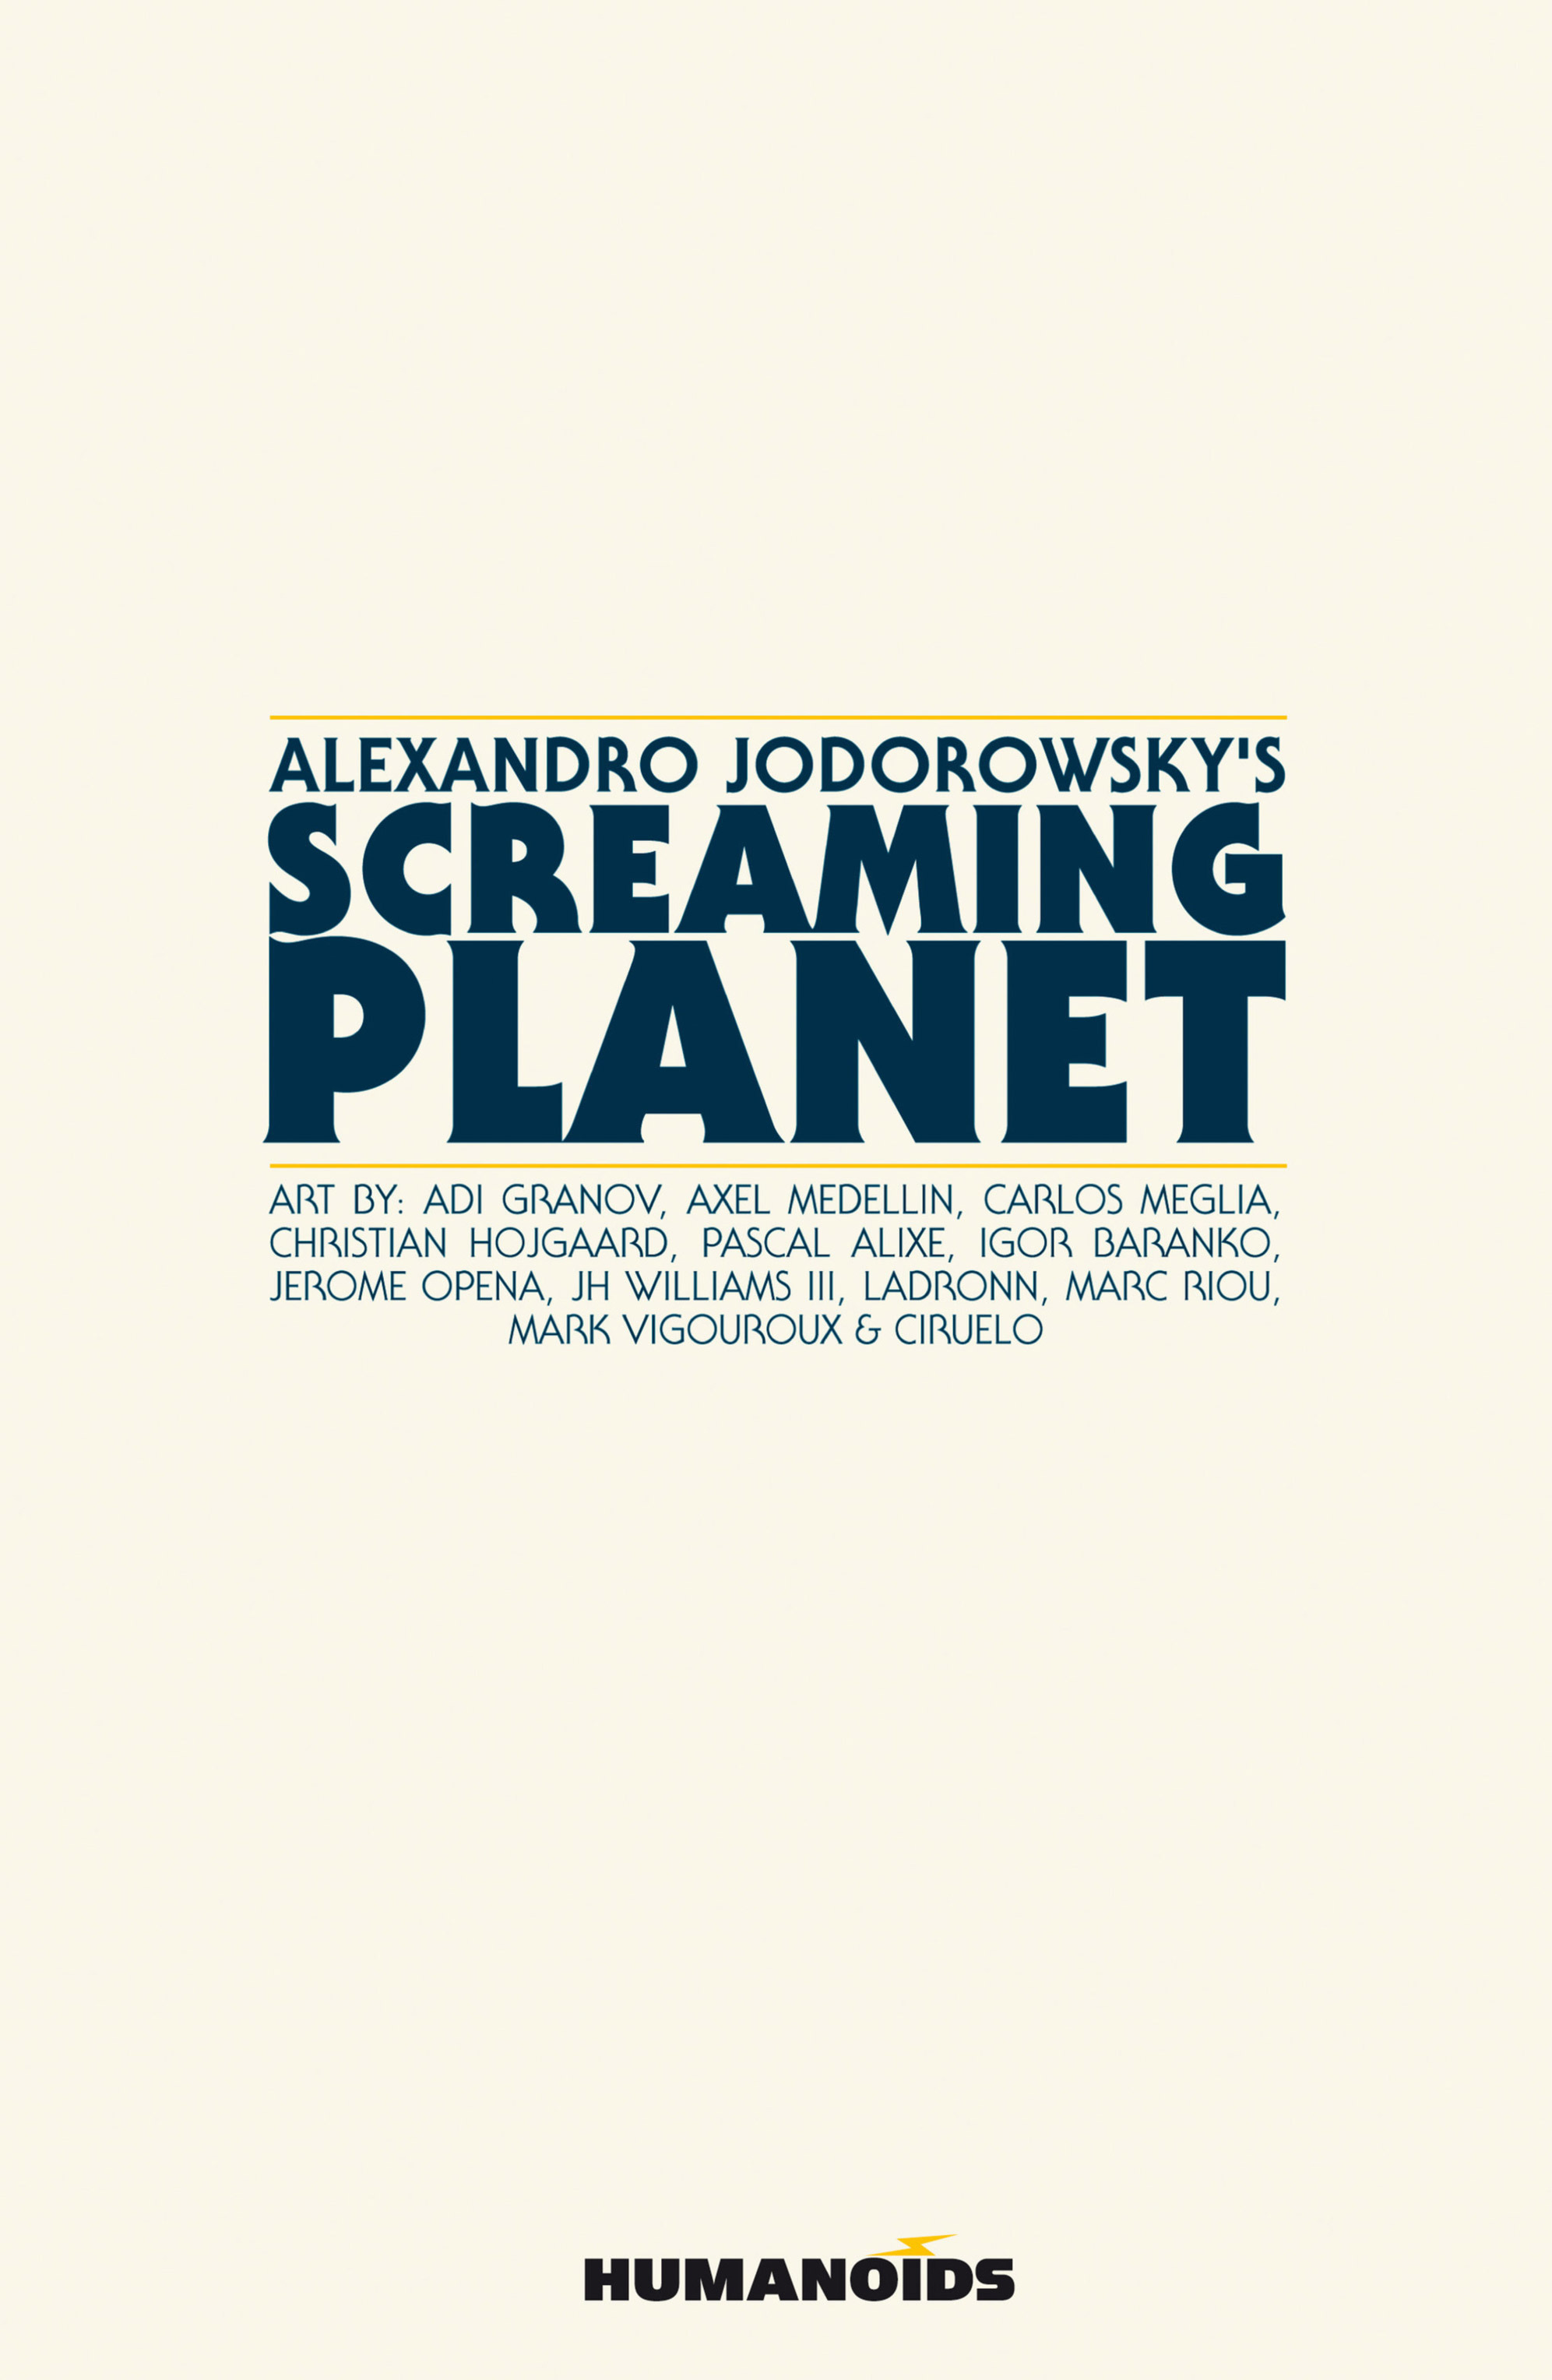 Read online Alejandro Jodorowsky's Screaming Planet comic -  Issue #2 - 2